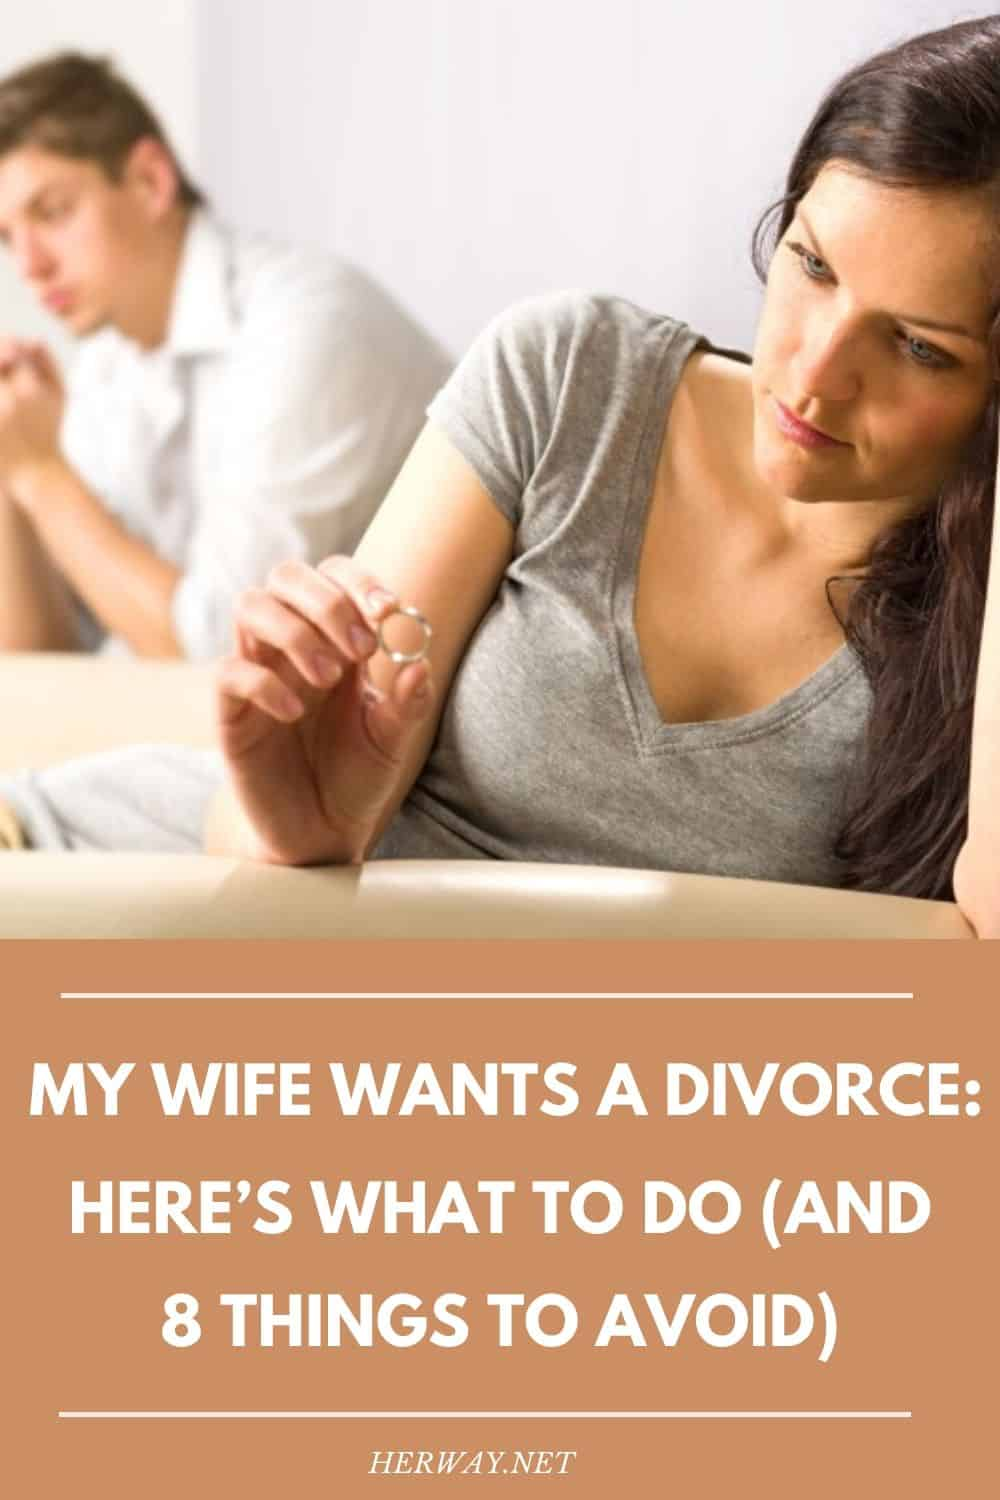 My Wife Wants A Divorce: Here's What To Do (And 8 Things To Avoid)